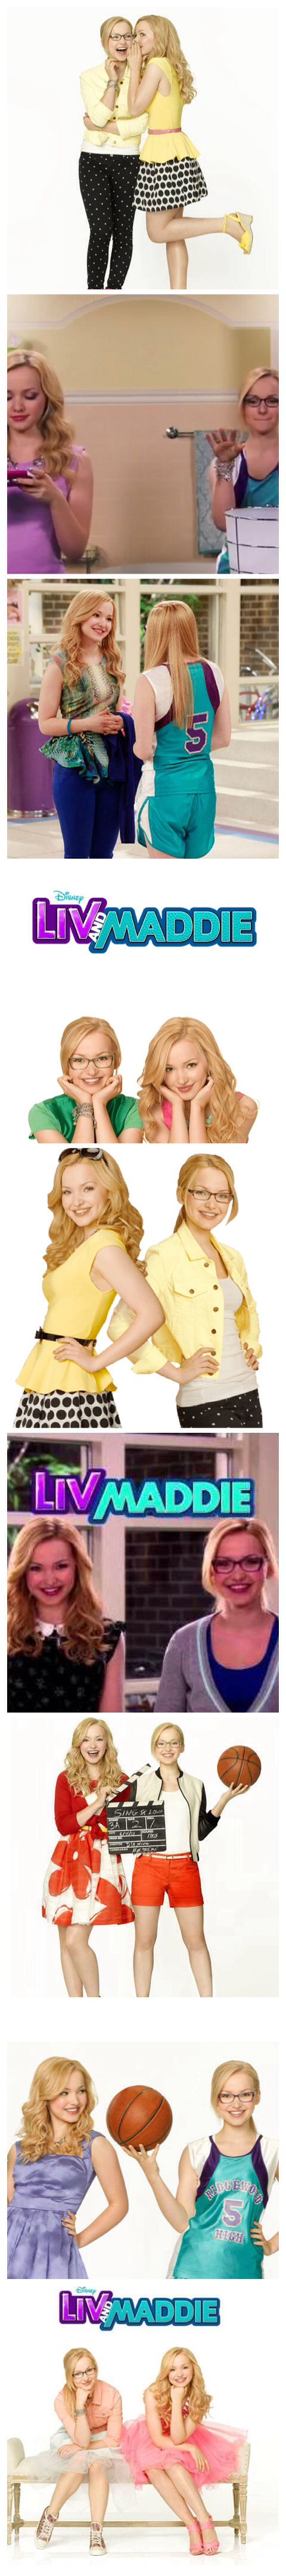 Disney channel coloring pages liv and maddie - Liv And Maddie Photo Strip